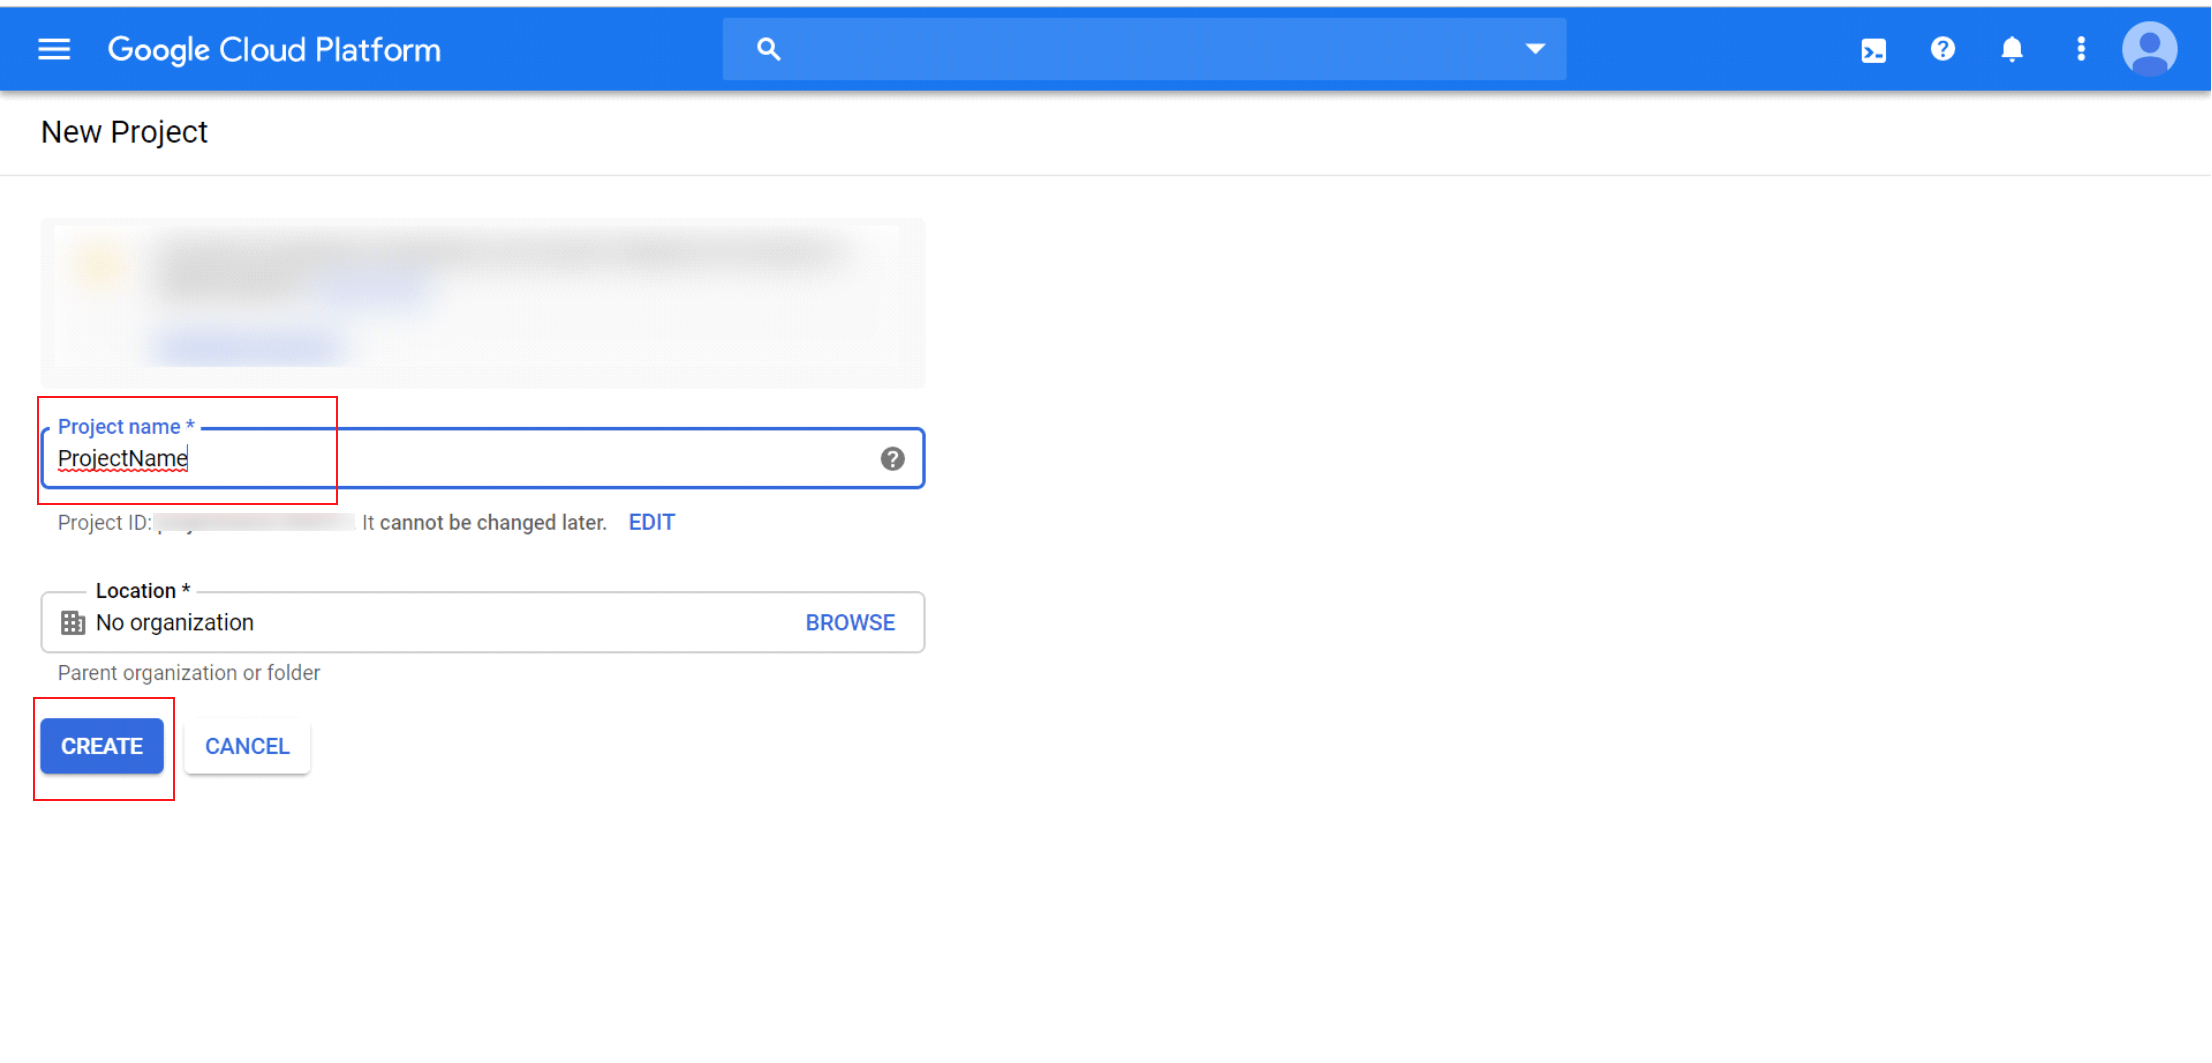 setup miniOrange as broker for oauth with Google